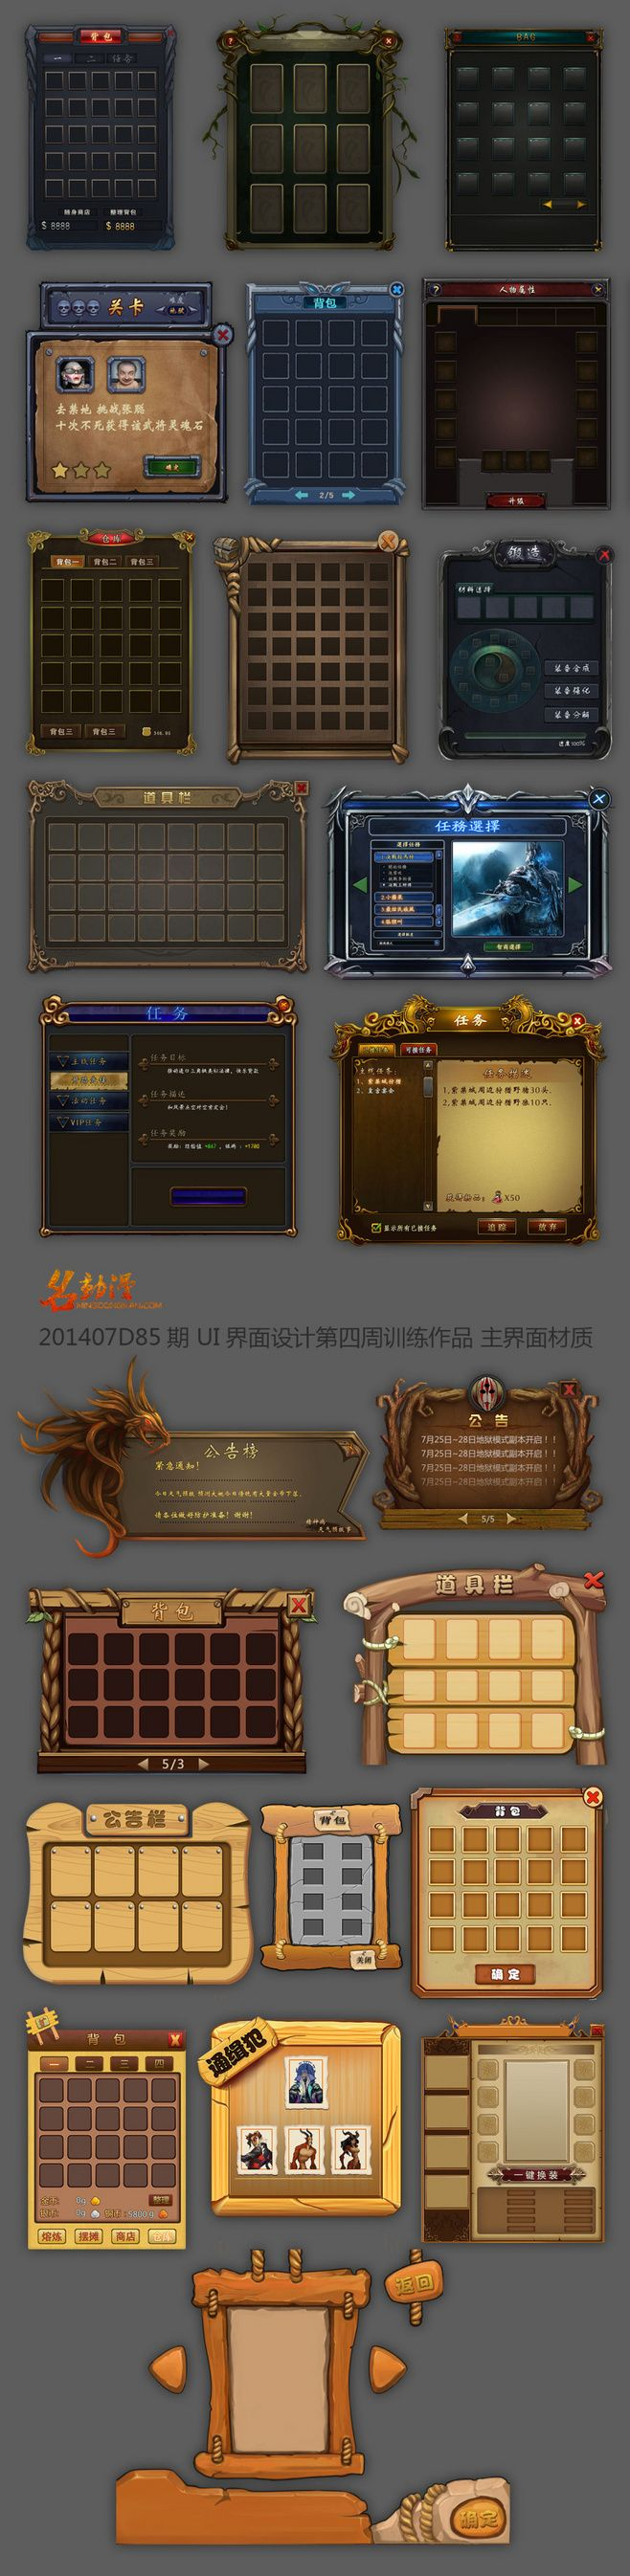 原创作品:游戏UI作品——功能图标,徽章... Game user interface gui ui | NOT OUR ART - Please click artwork for source | WRITING INSPIRATION for Dungeons and Dragons DND Pathfinder PFRPG Warhammer 40k Star Wars Shadowrun Call of Cthulhu and other d20 roleplaying fantasy science fiction scifi horror location equipment monster character game design | Create your own RPG Books w/ www.rpgbard.com